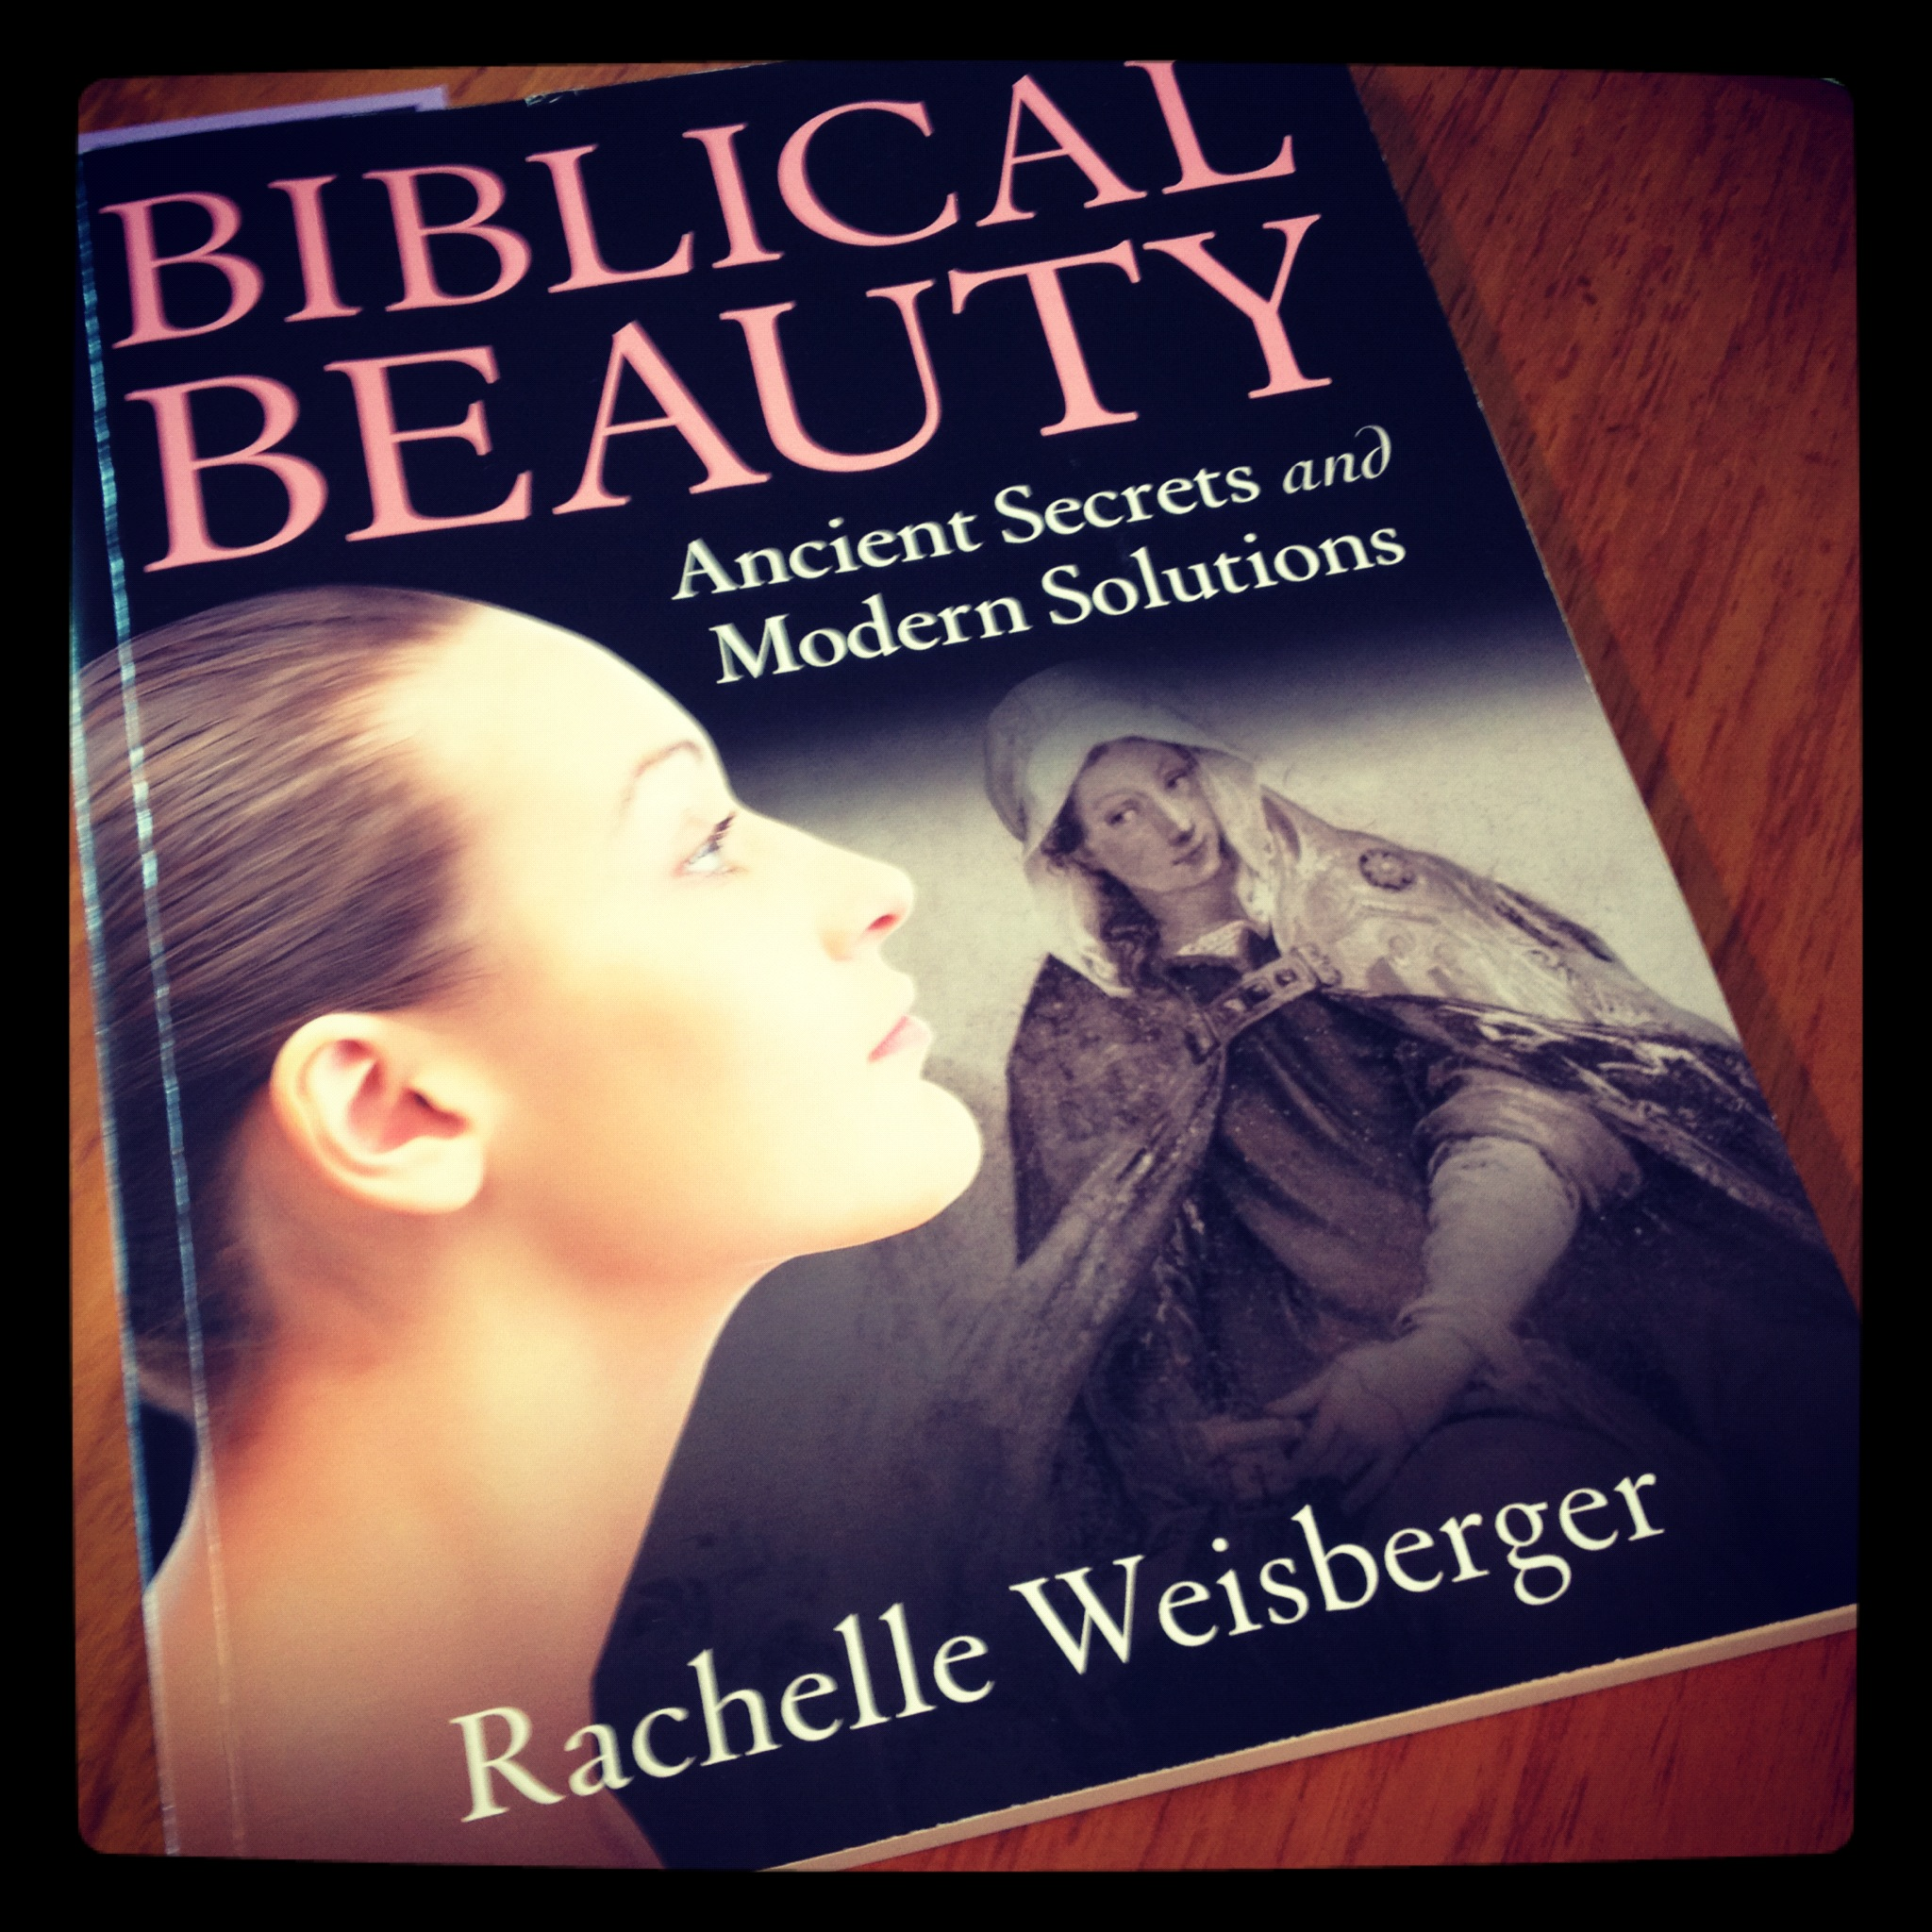 Biblical Beauty: A review